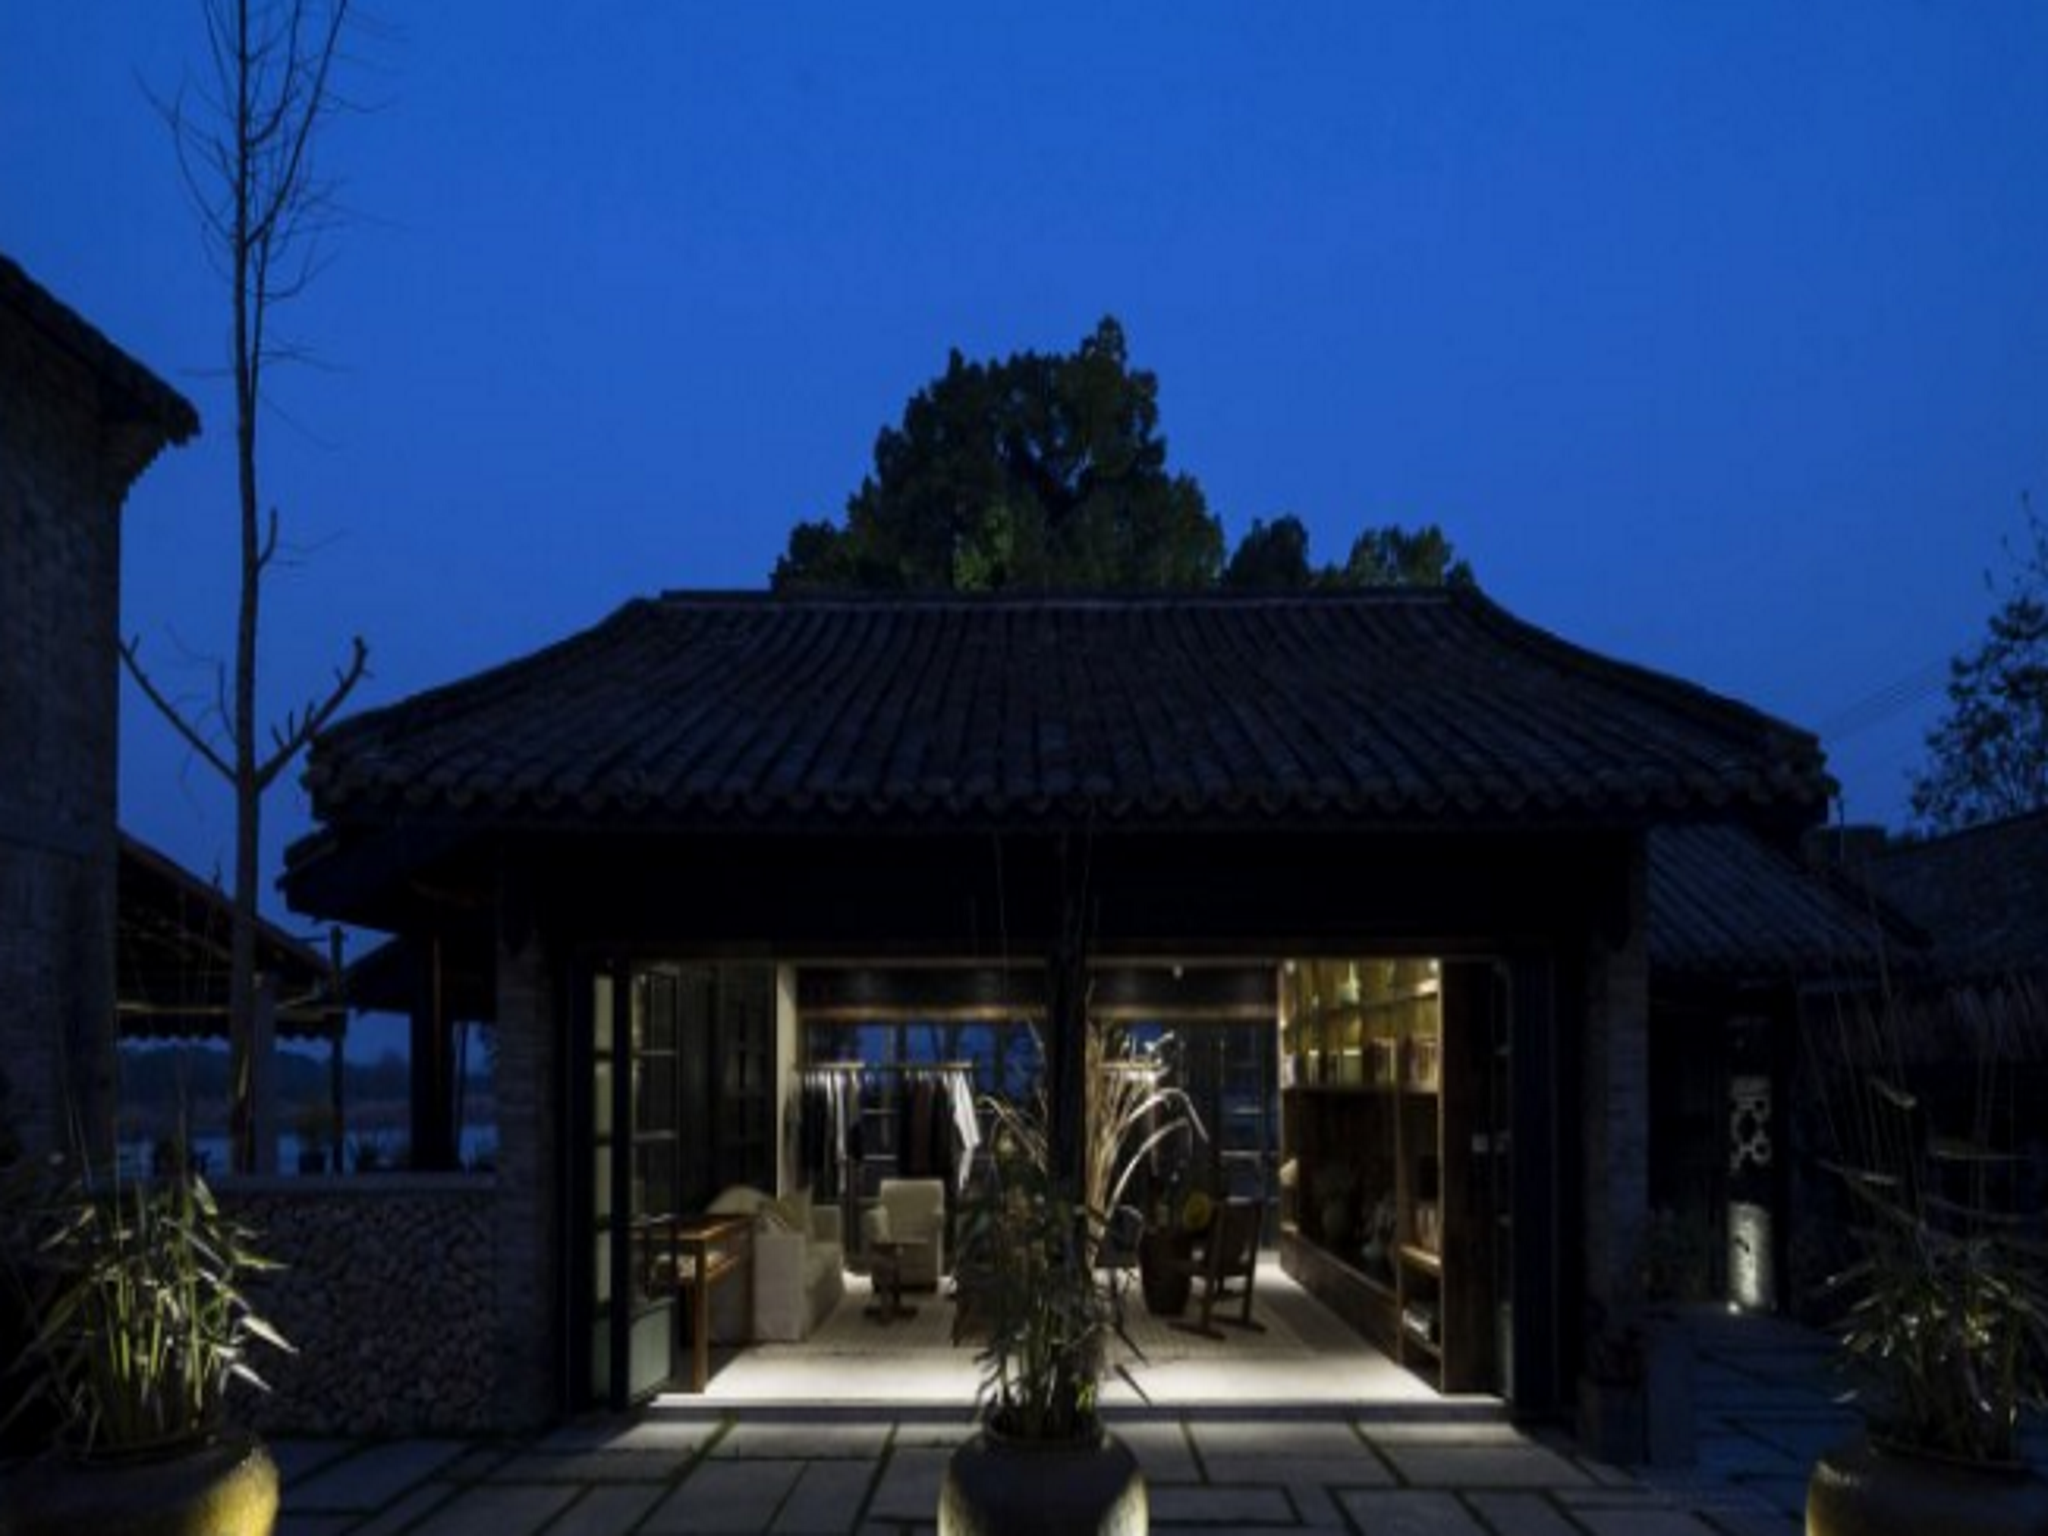 Seclusive Life in Landscape, Lishui